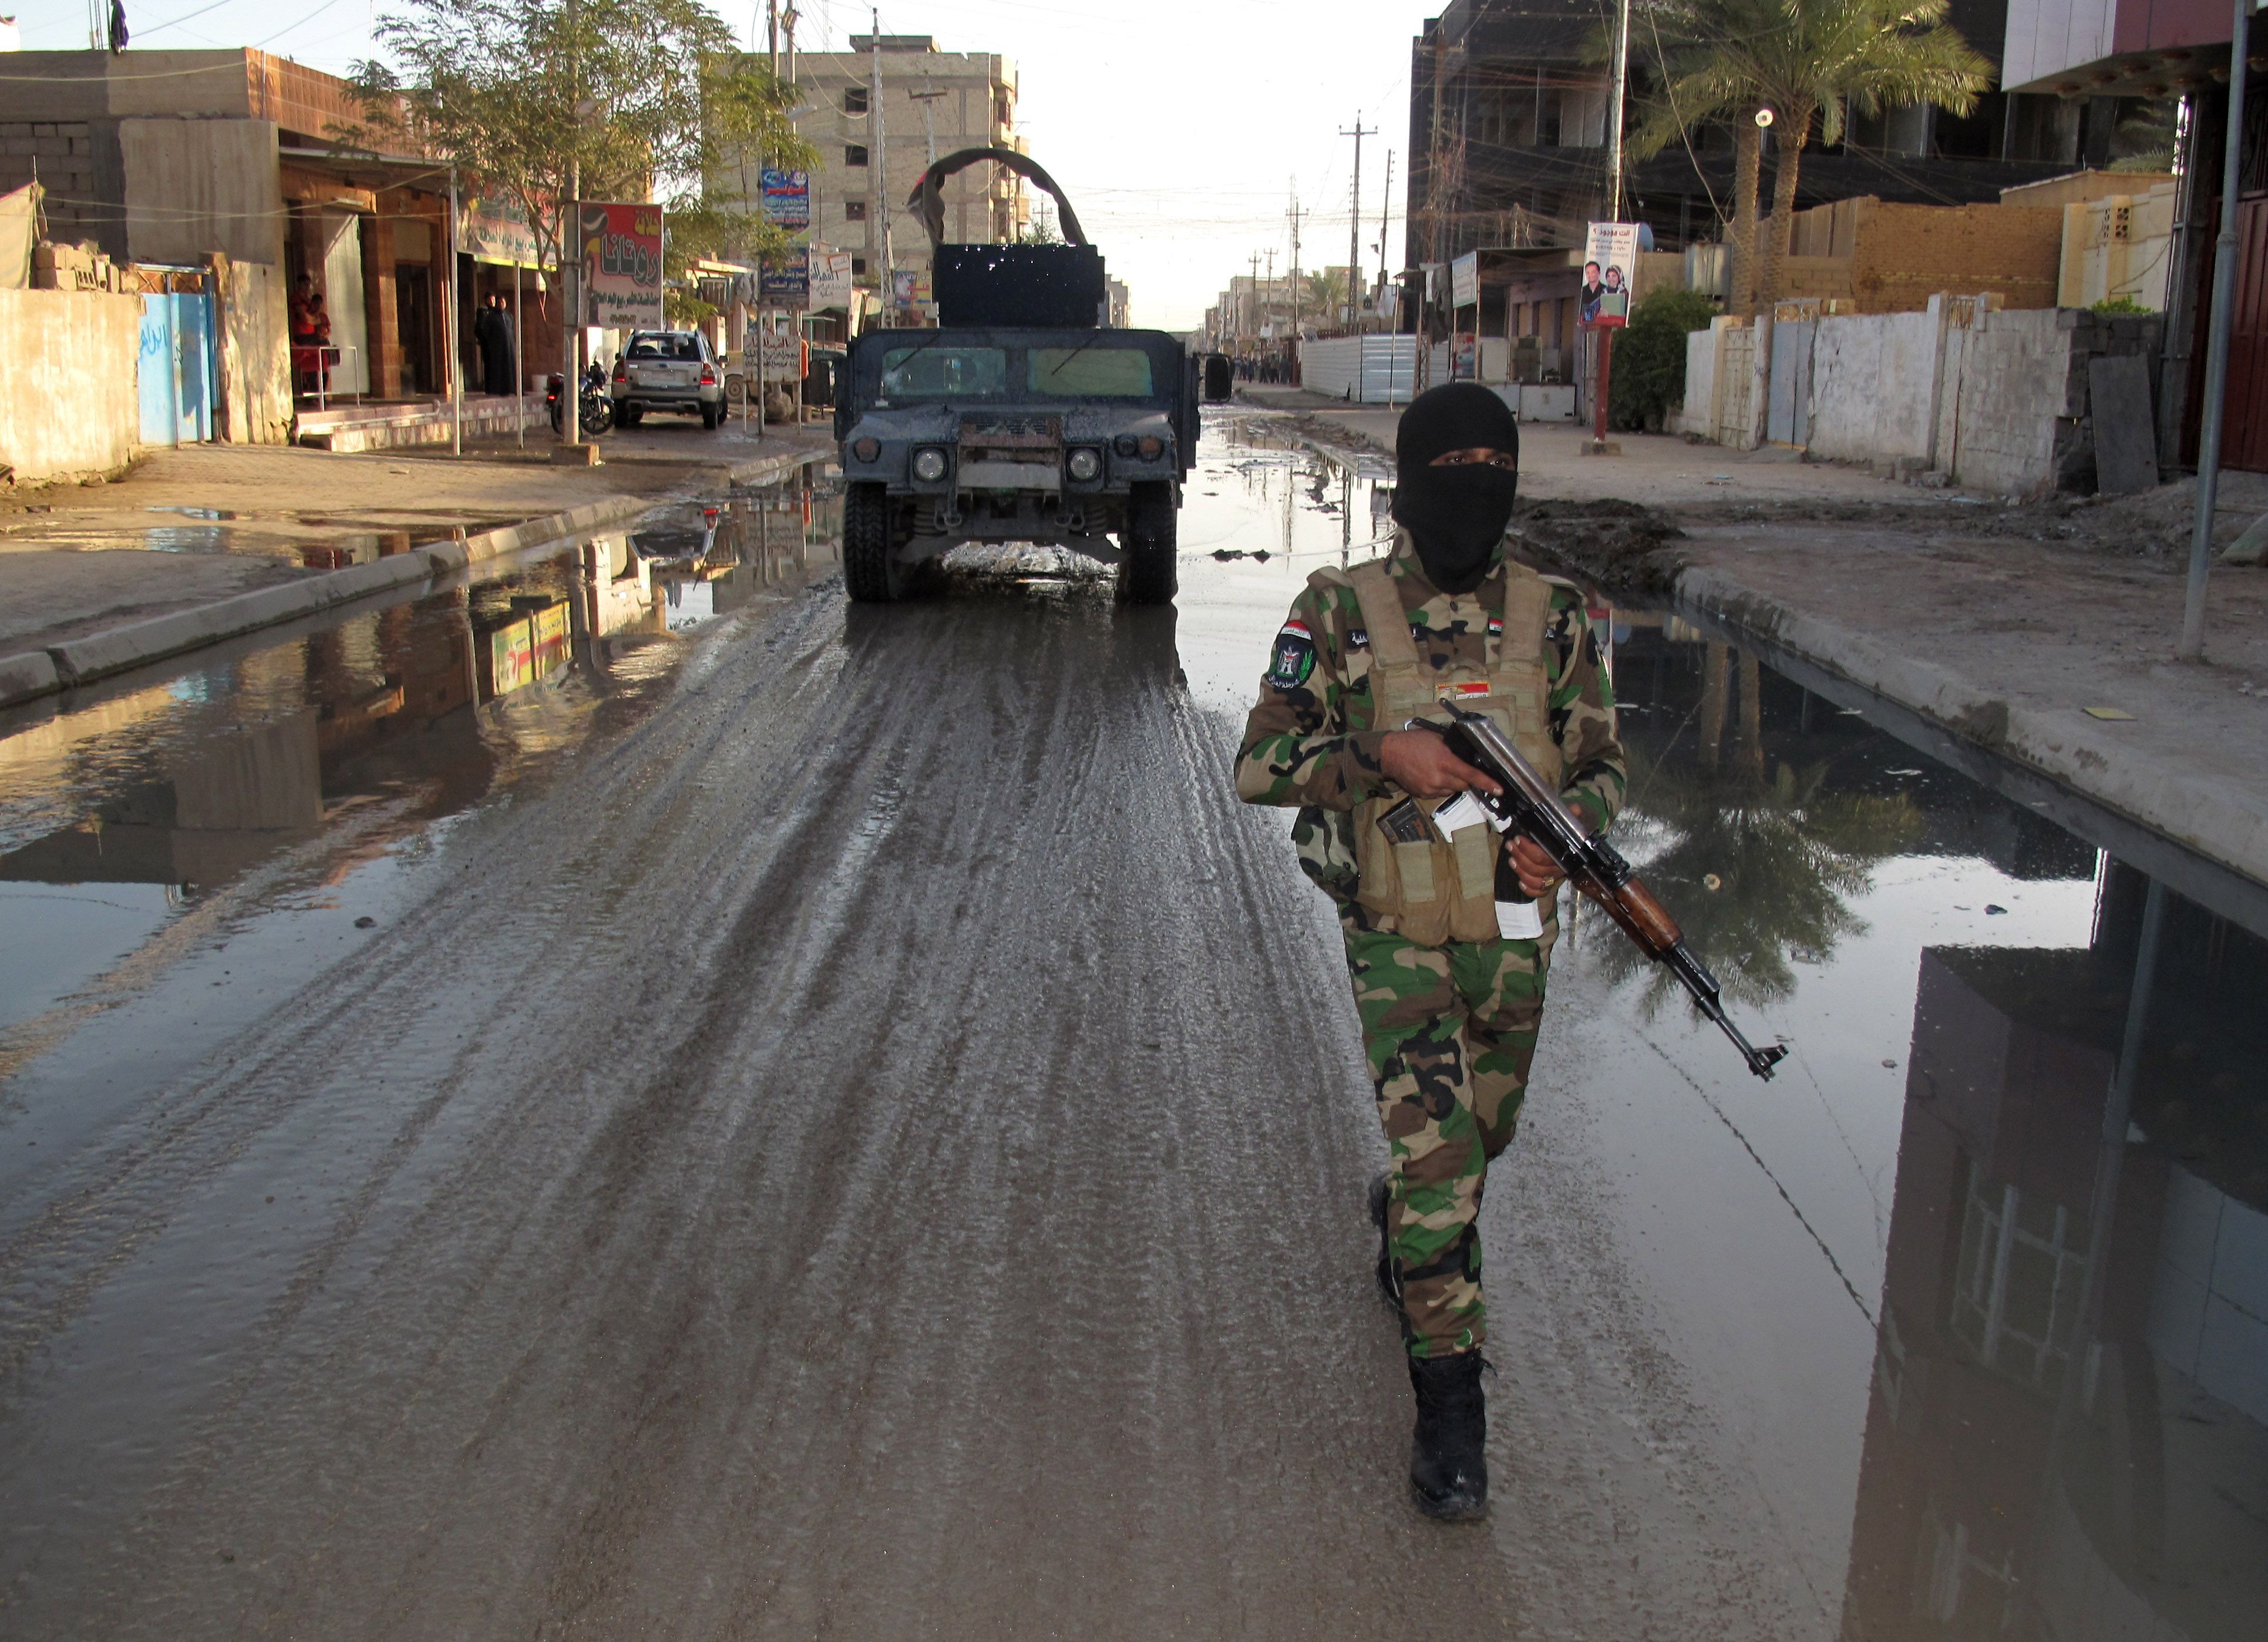 Baghdad curfew suspension is double-edged sword for citizens (AFP File Photo/Azhar Shallal)